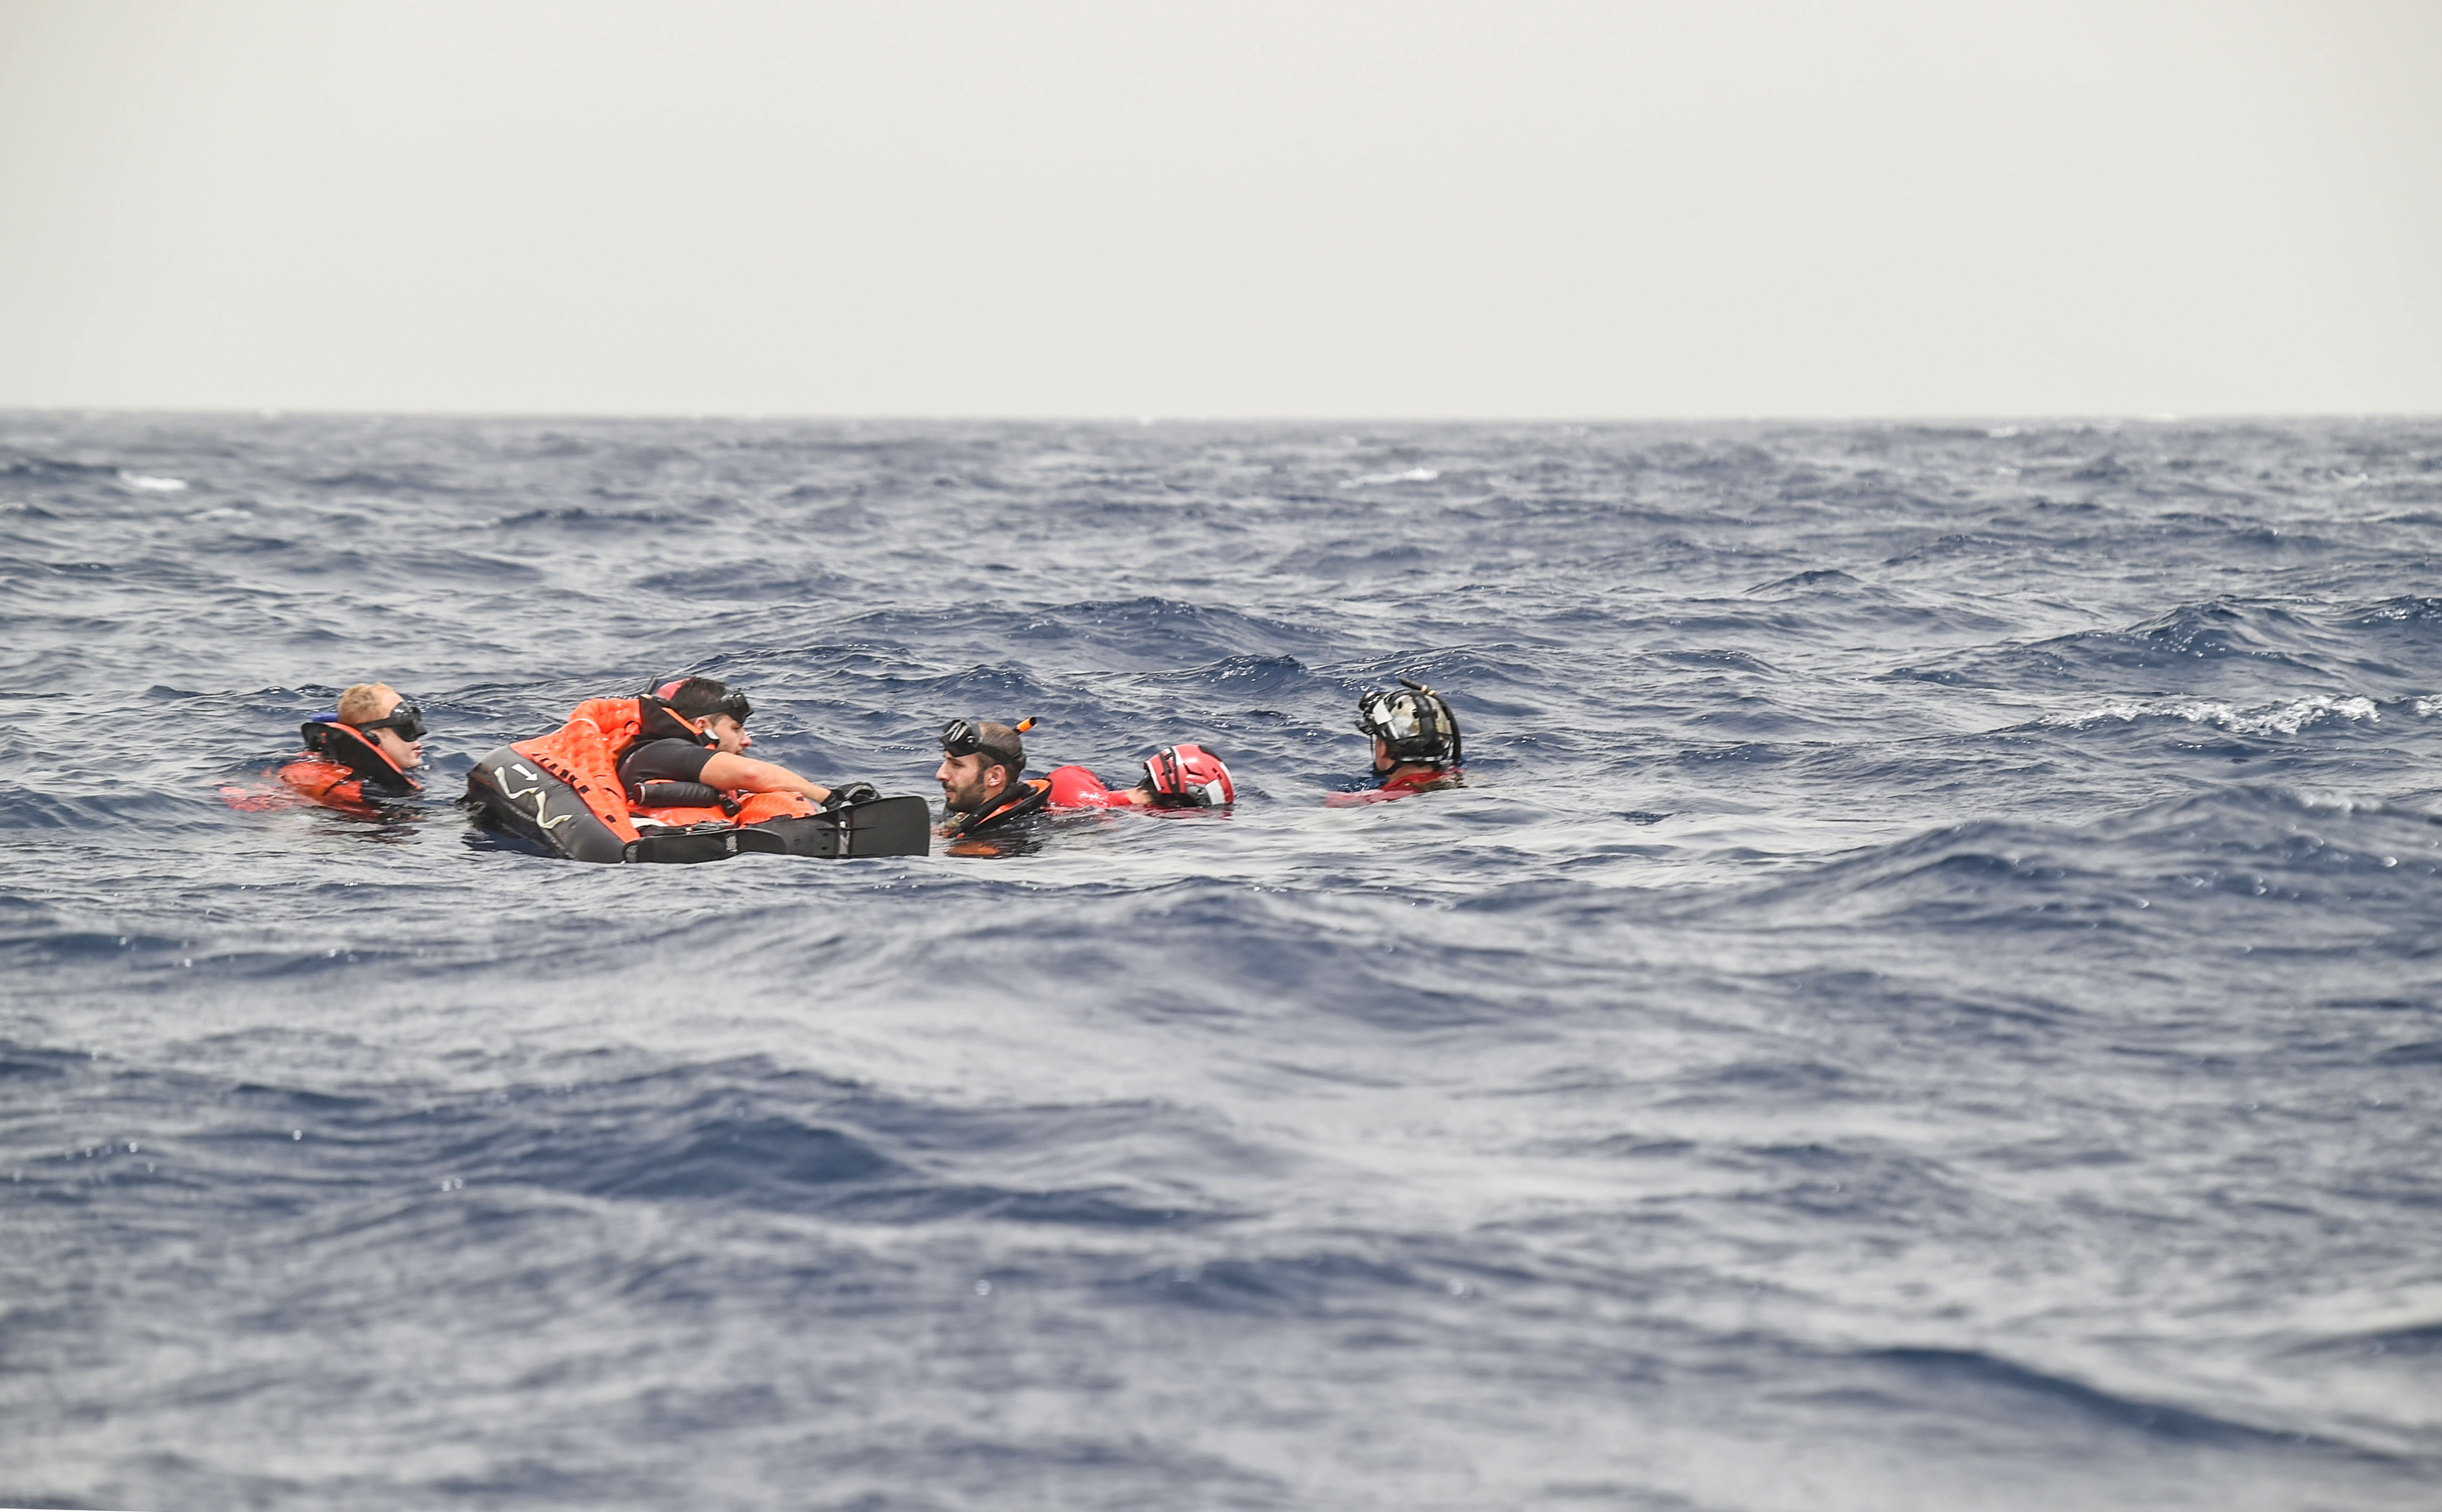 French Air Force rescue personnel assigned to the Transport Squadron ET 88 and U.S. Air Force pararescuemen from the 82nd Expeditionary Rescue Squadron, assigned to Combined Joint Task Force-Horn of Africa, participate in a bilateral water operations exercise, in the Gulf of Tadjoura, July 3, 2017. This exercise marked the first bilateral rotary wing water operations exercise between the 82 ERQS and French forces. (U.S. Air Force photo by Staff Sgt. Eboni Prince)